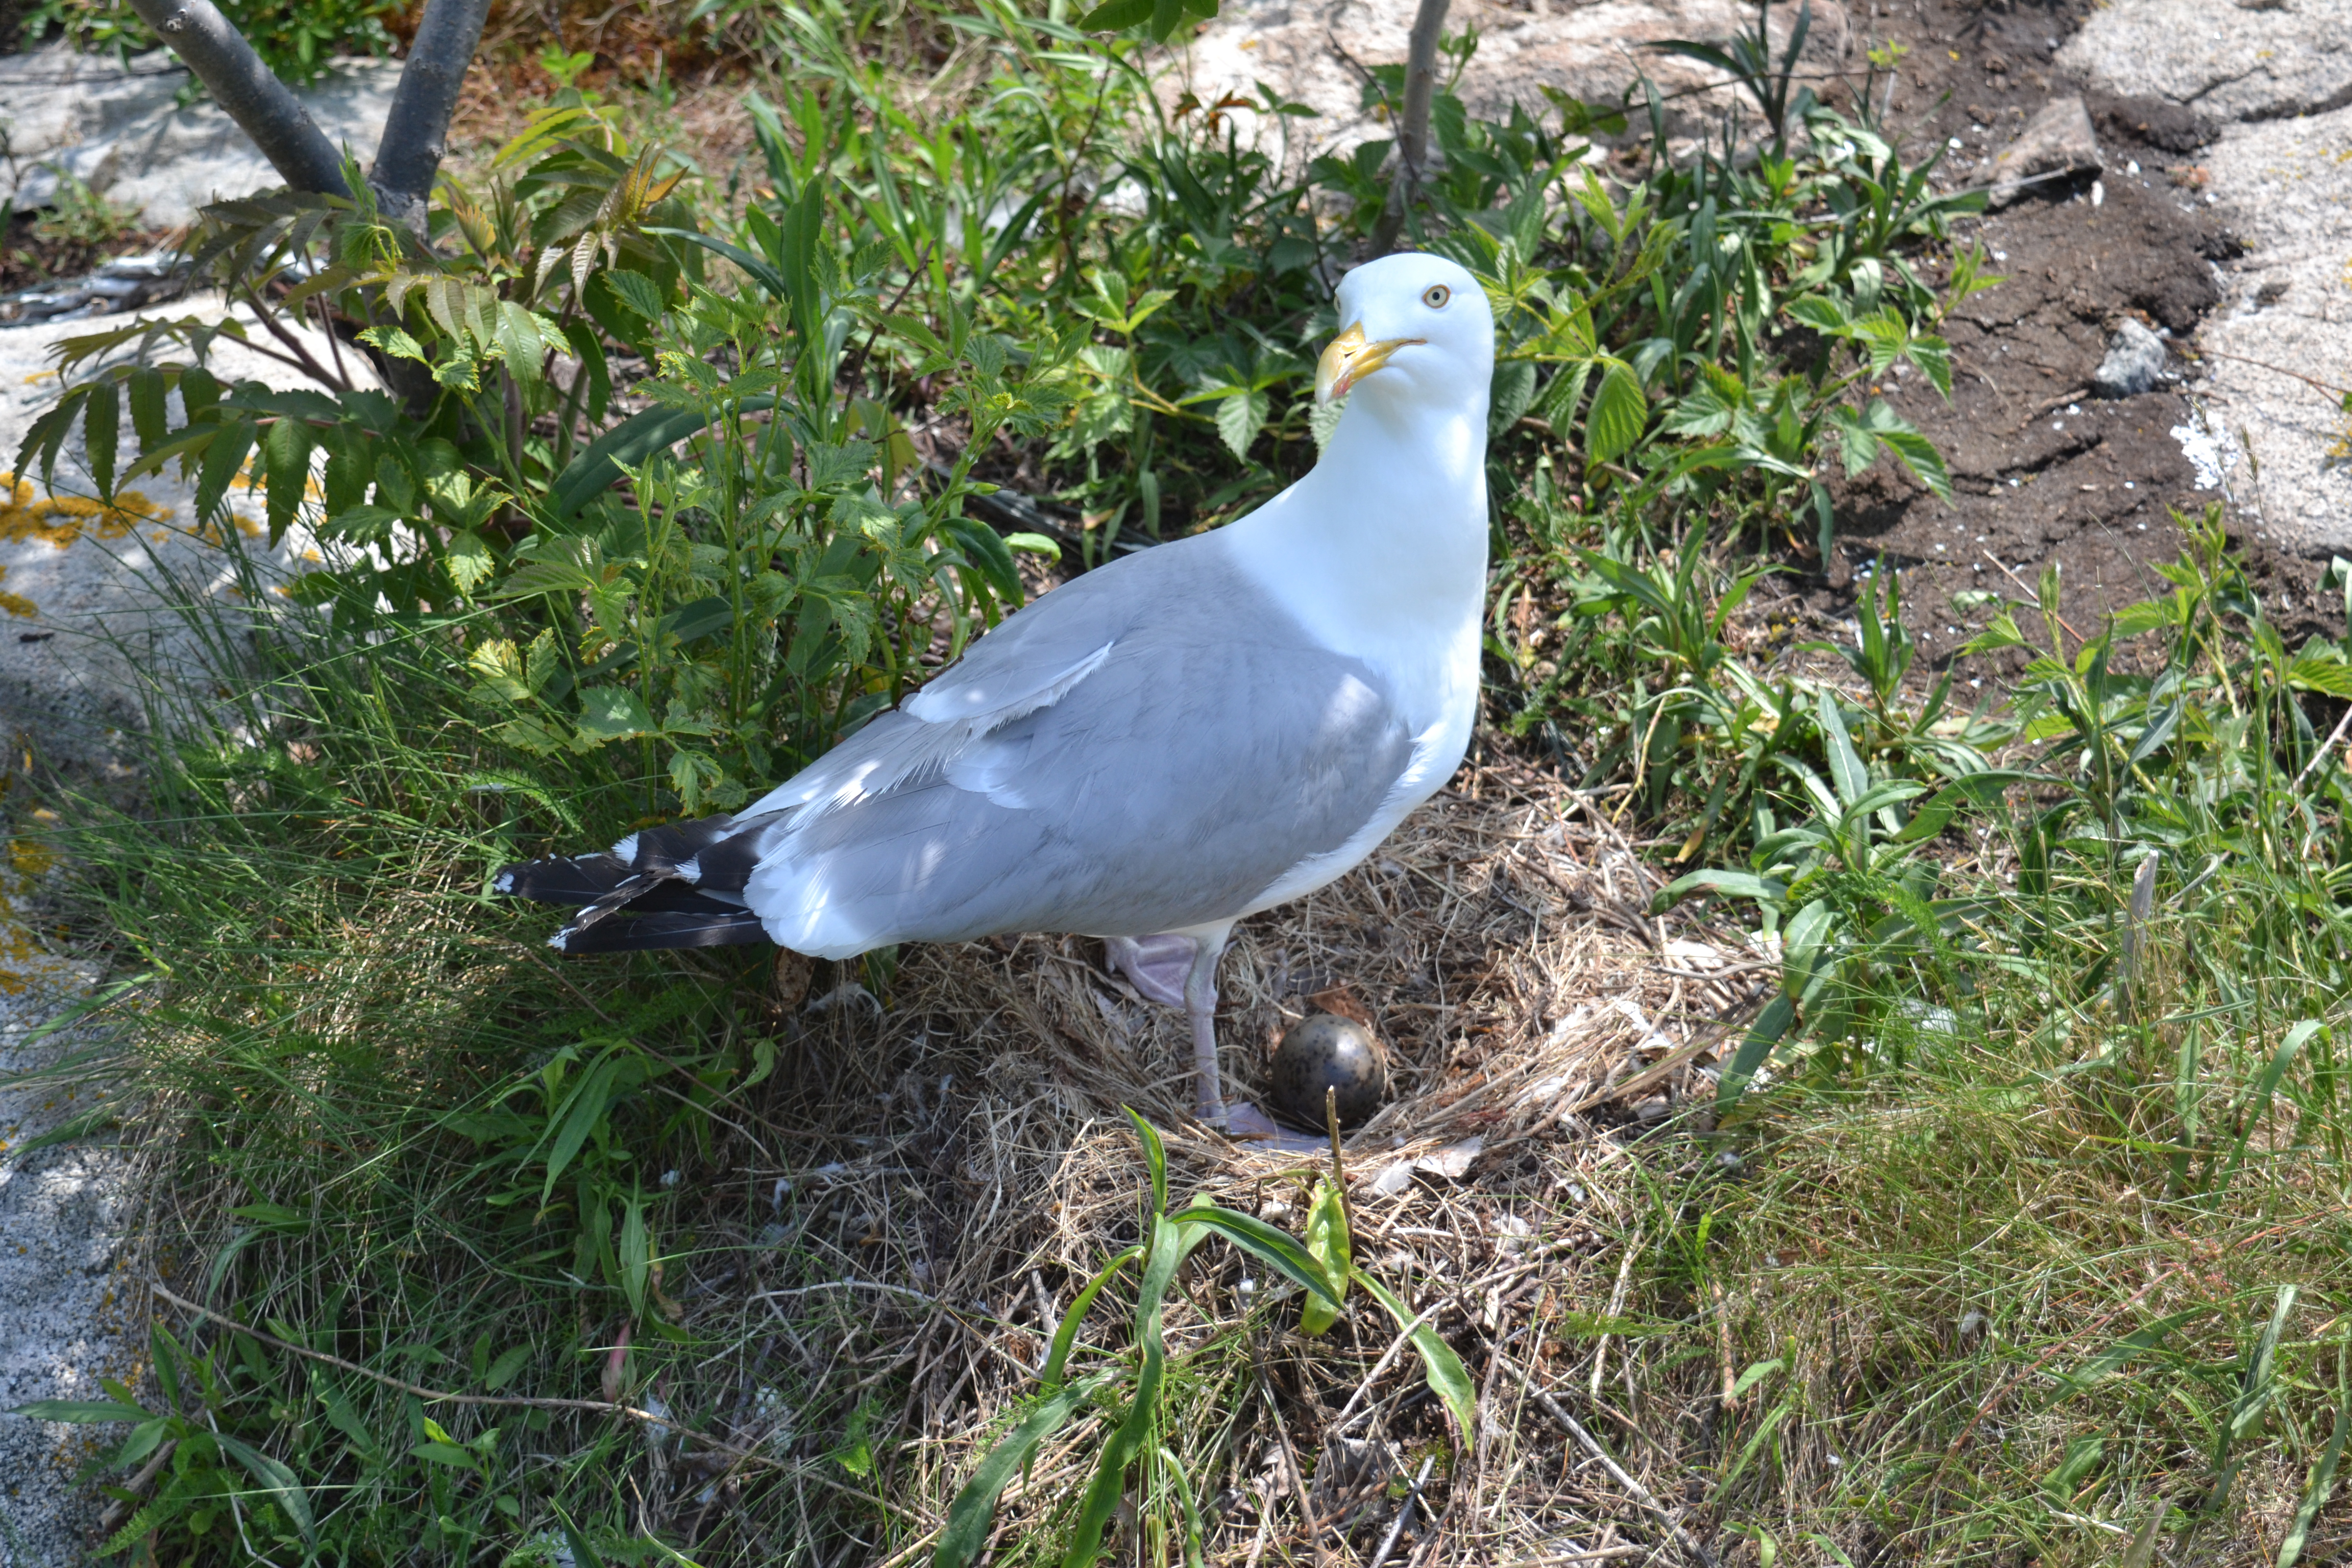 Seagulls love Thacher Island;  here is one with its newly hatched egg.